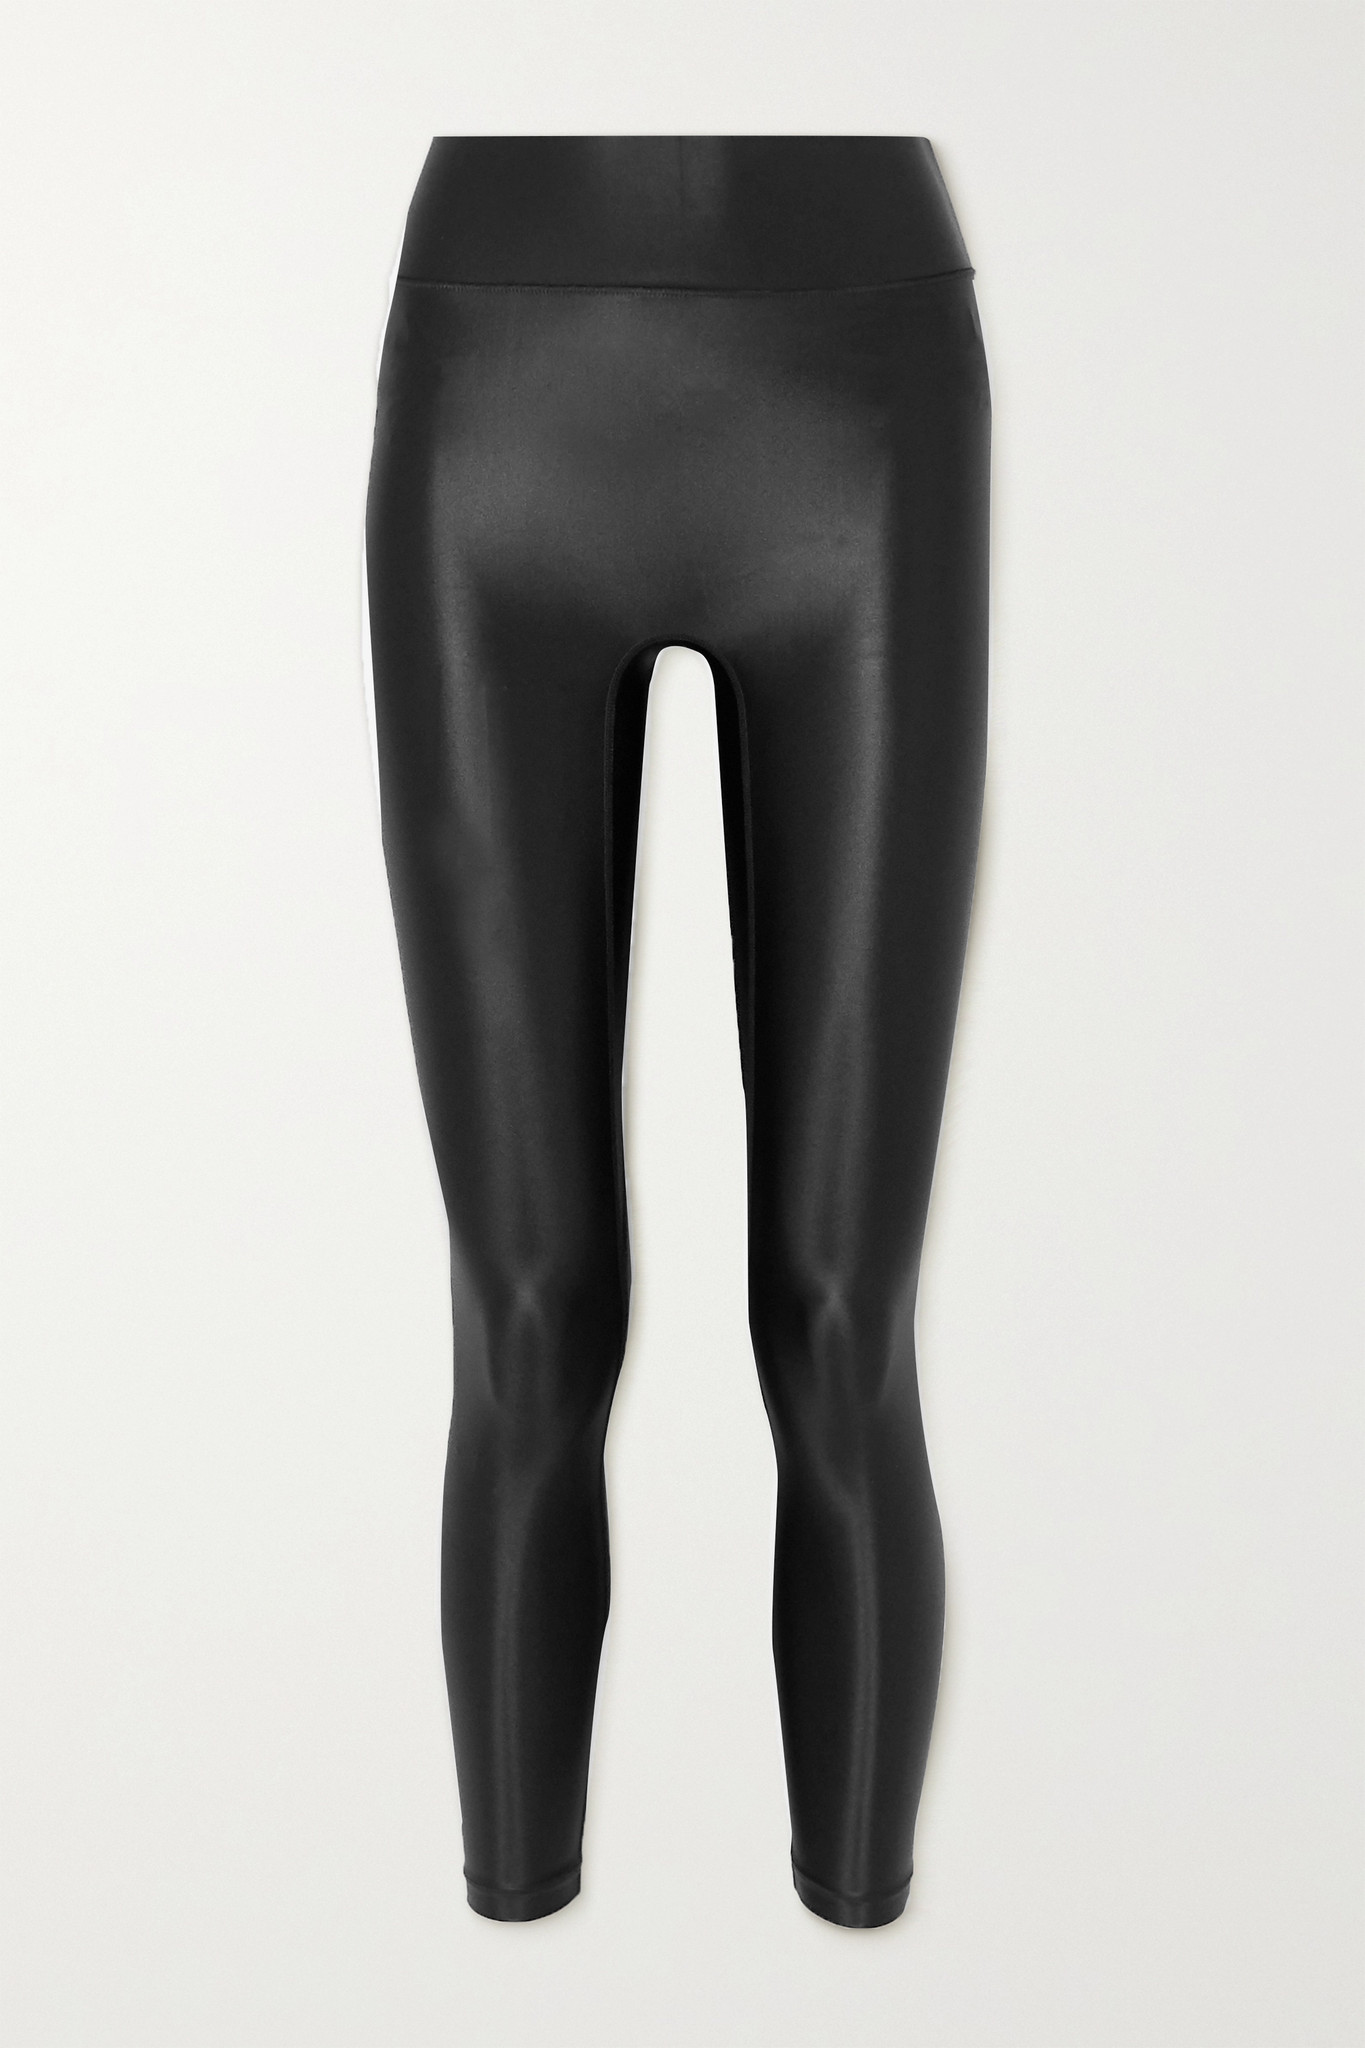 ALL ACCESS - Center Stage Stretch Leggings - Black - x large